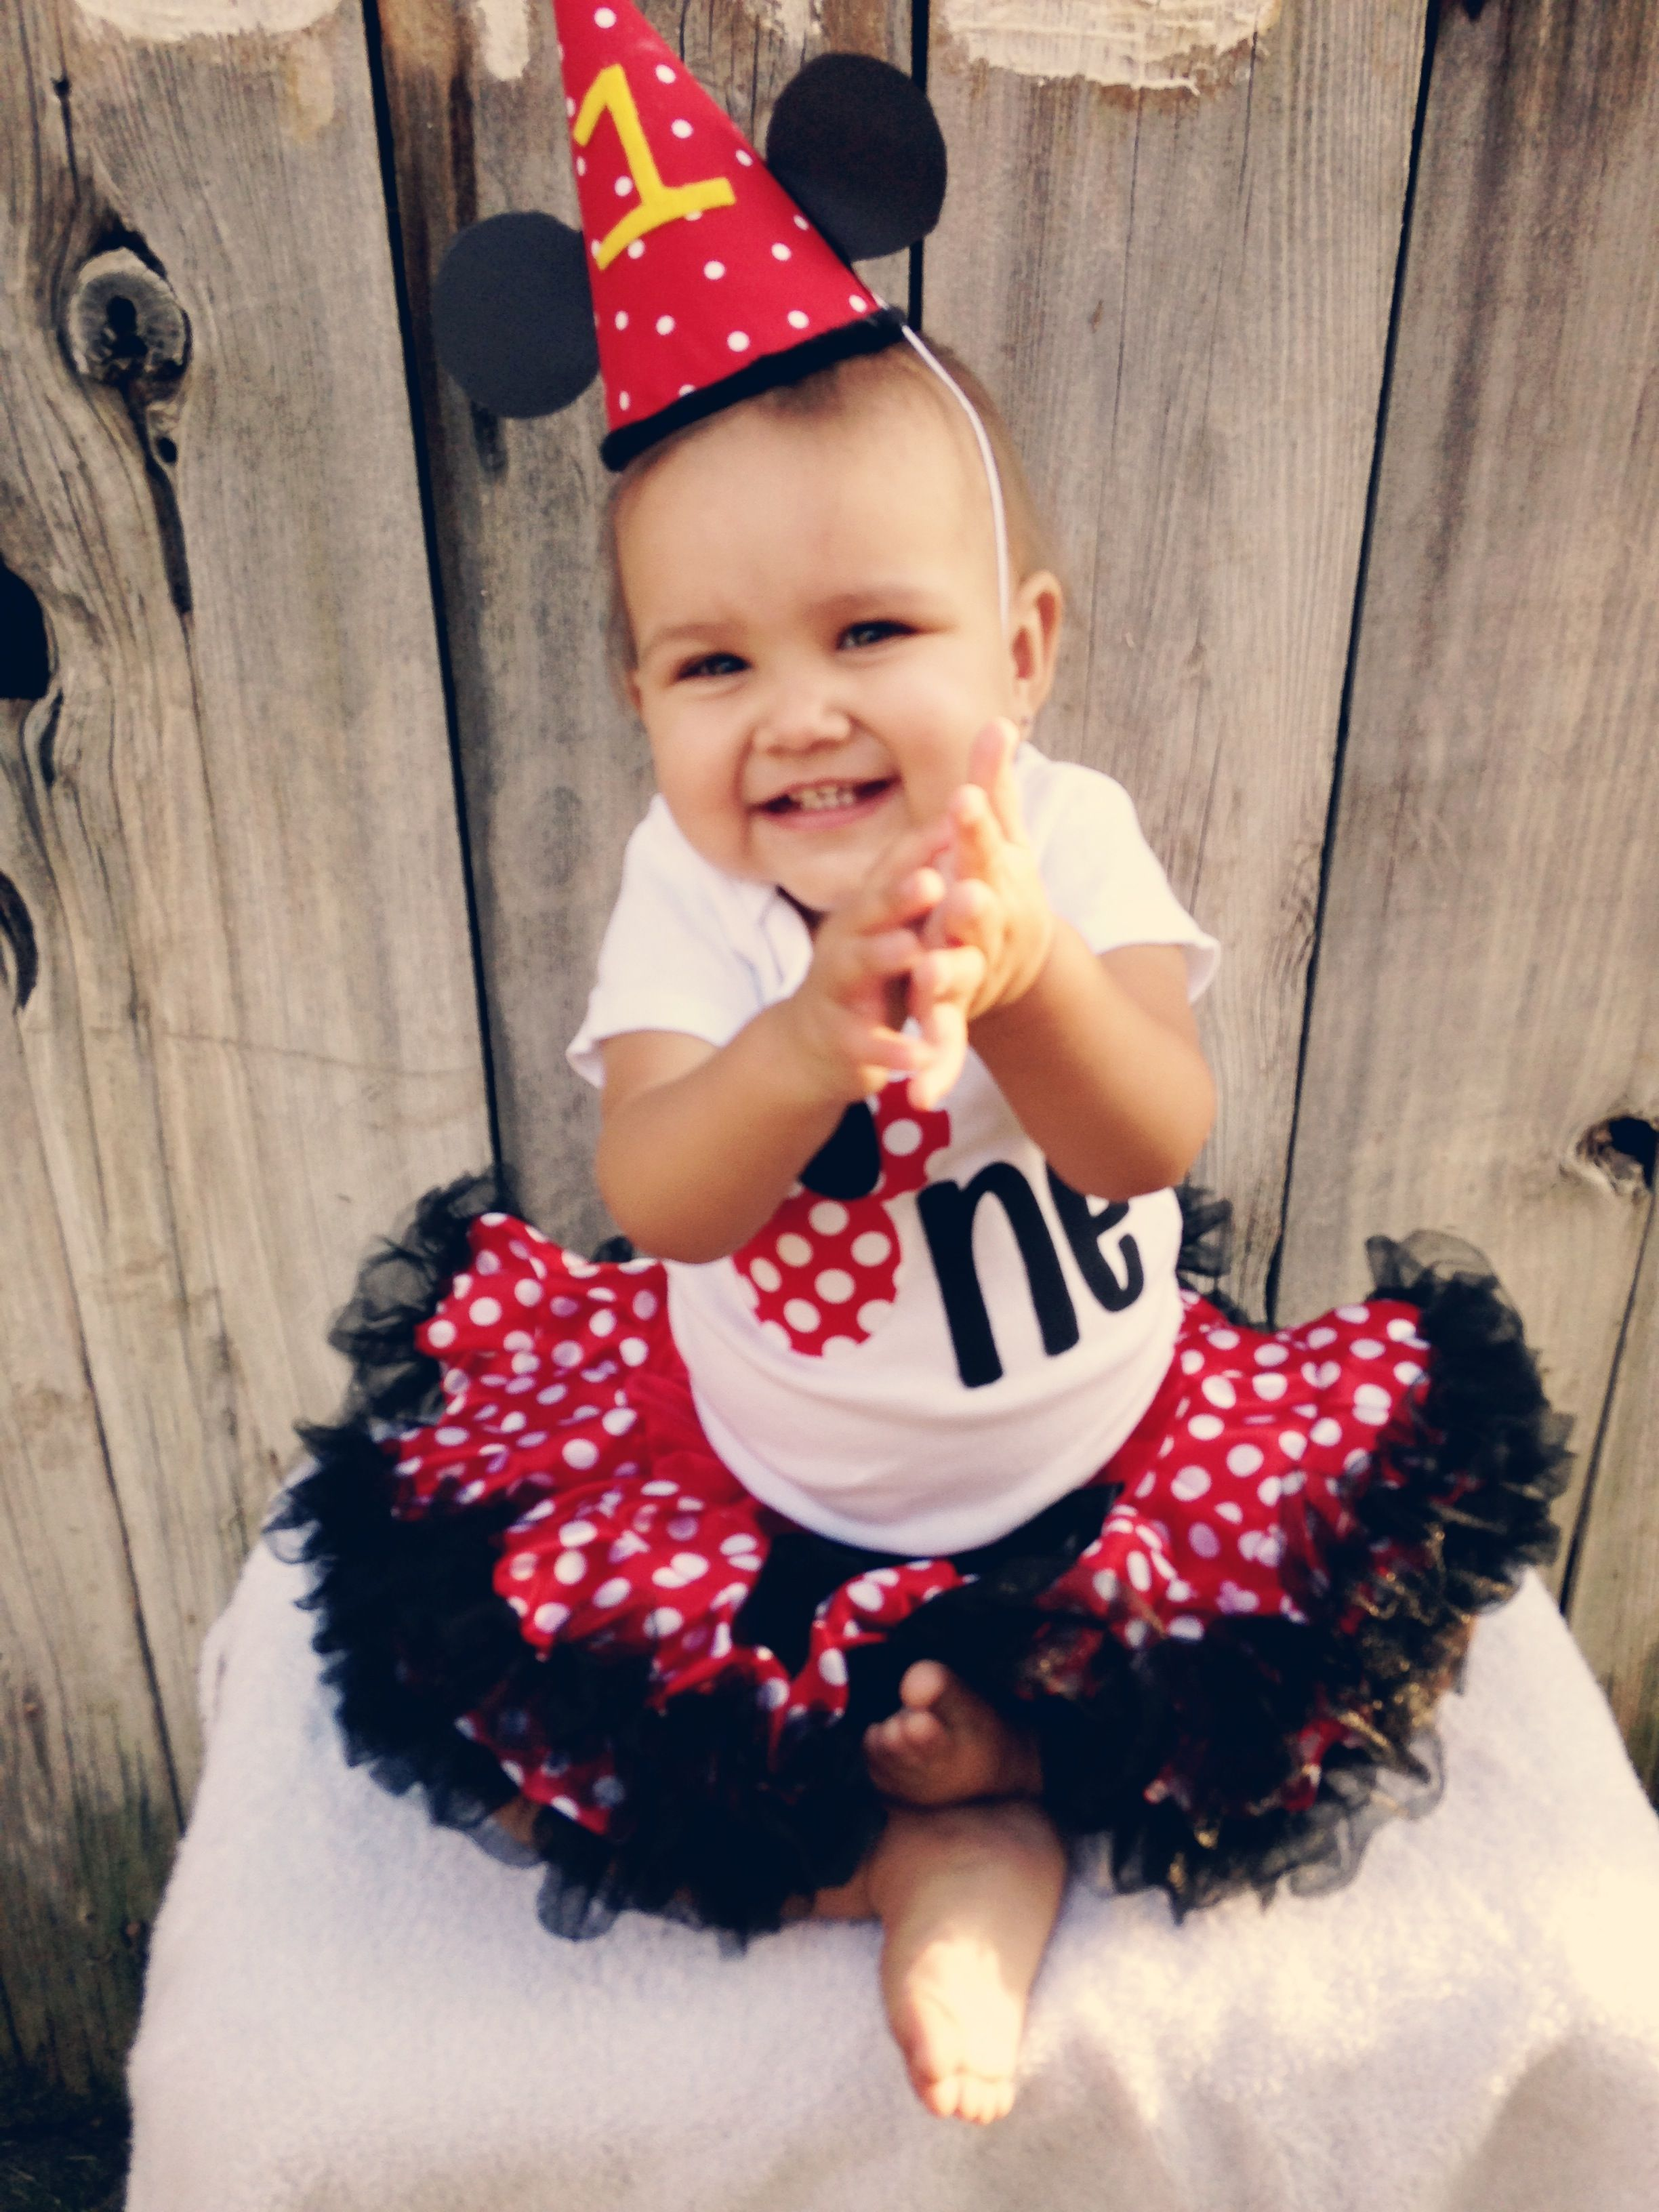 Minnie Mouse 1st Birthday, Monthy Growth Photo, 12 Months